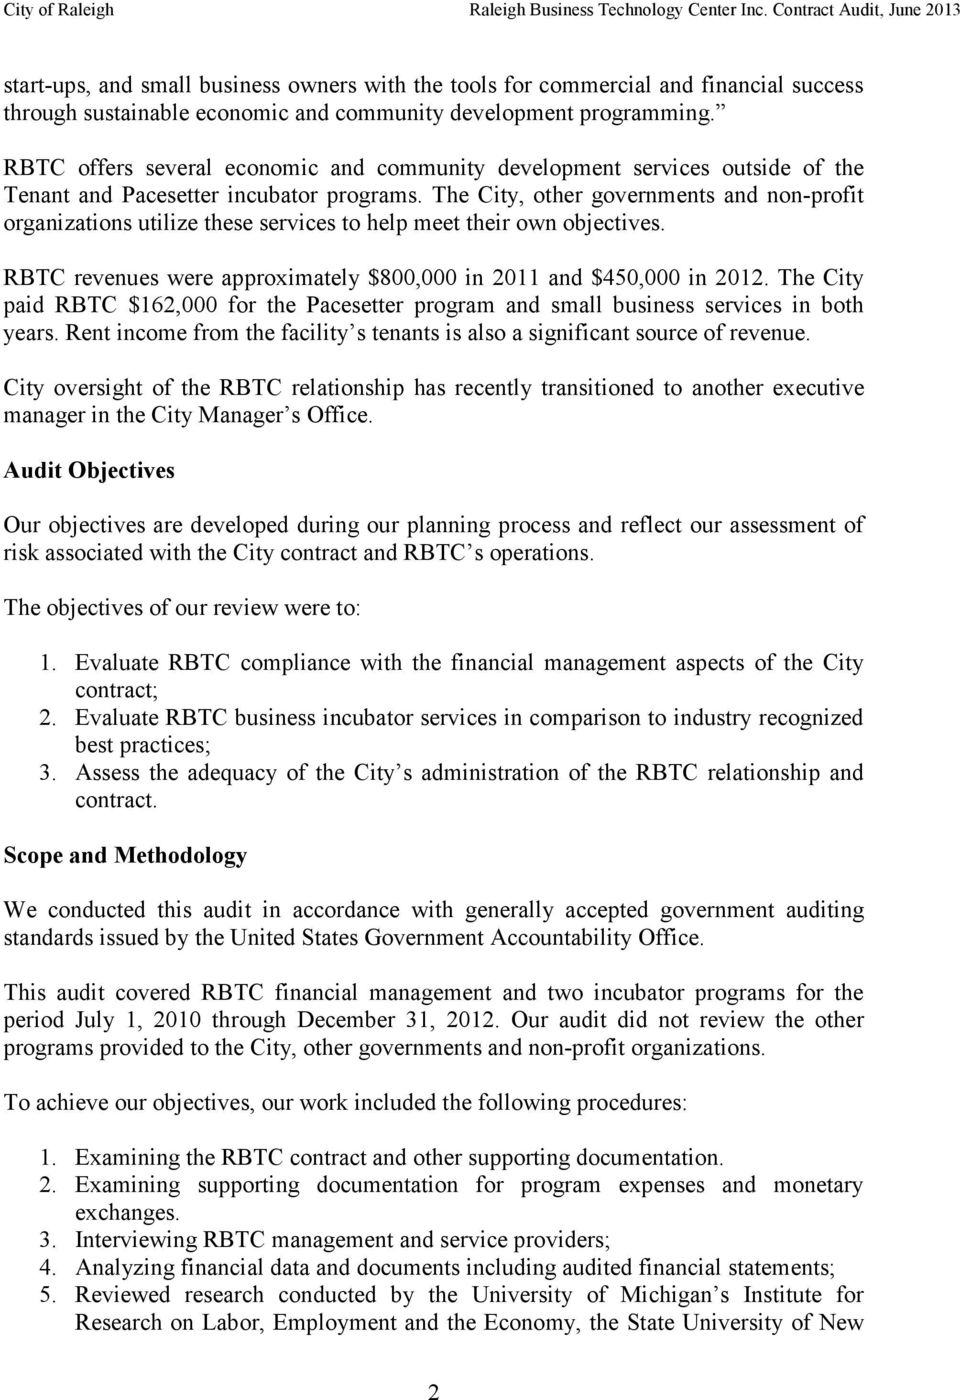 The City, other governments and non-profit organizations utilize these services to help meet their own objectives. RBTC revenues were approximately $800,000 in 2011 and $450,000 in 2012.